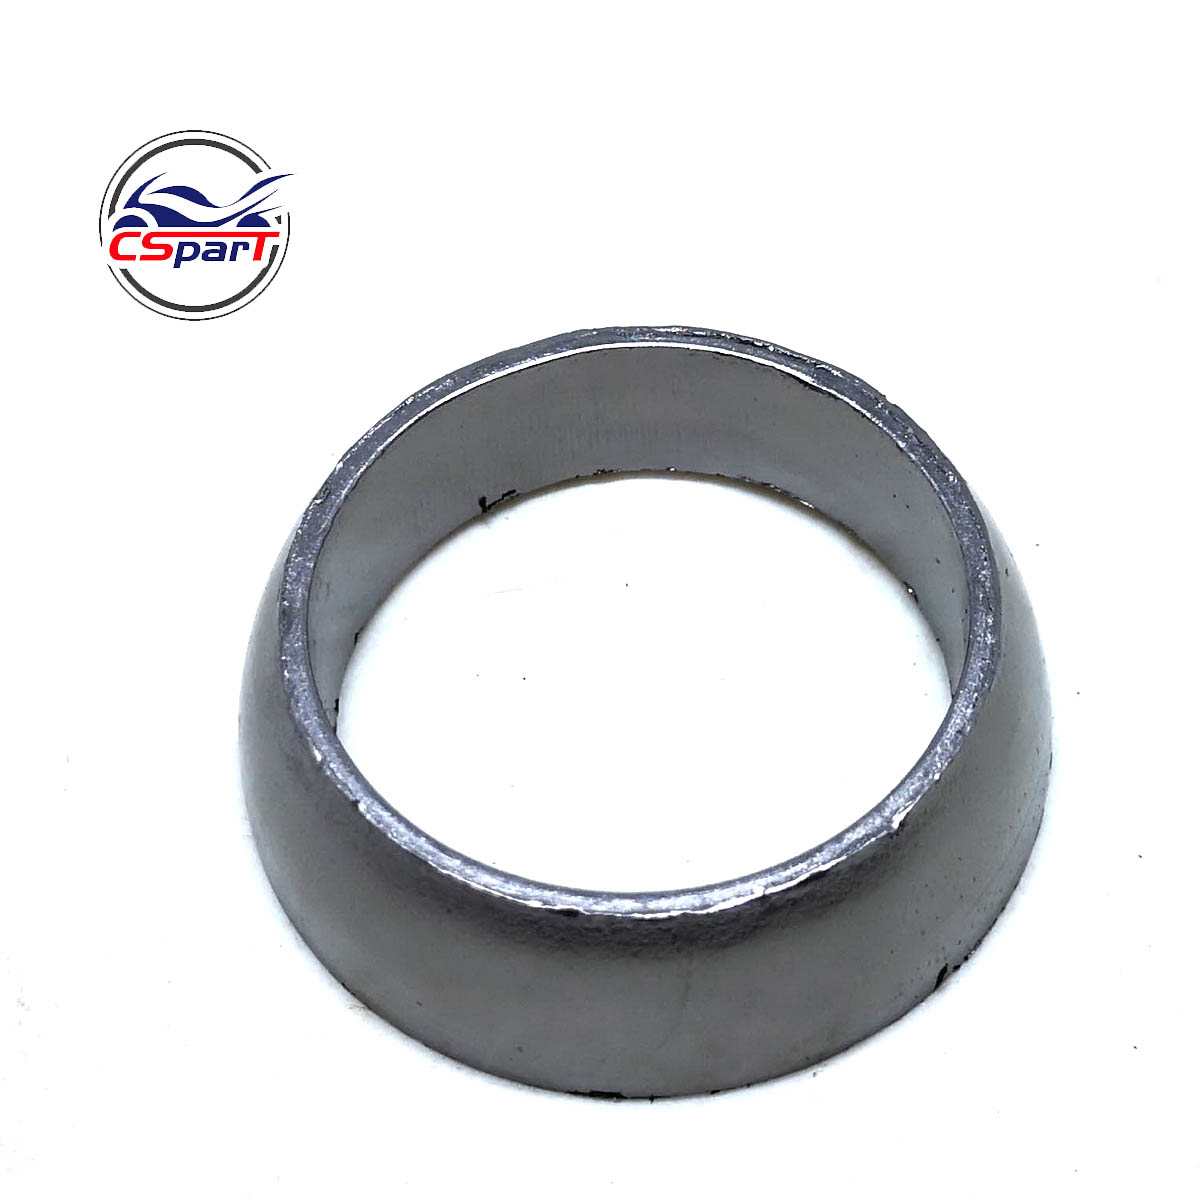 Exhaust Gasket Donut Seal For Polaris Ranger Sportsman 400 500 5256385 5243518 5242571